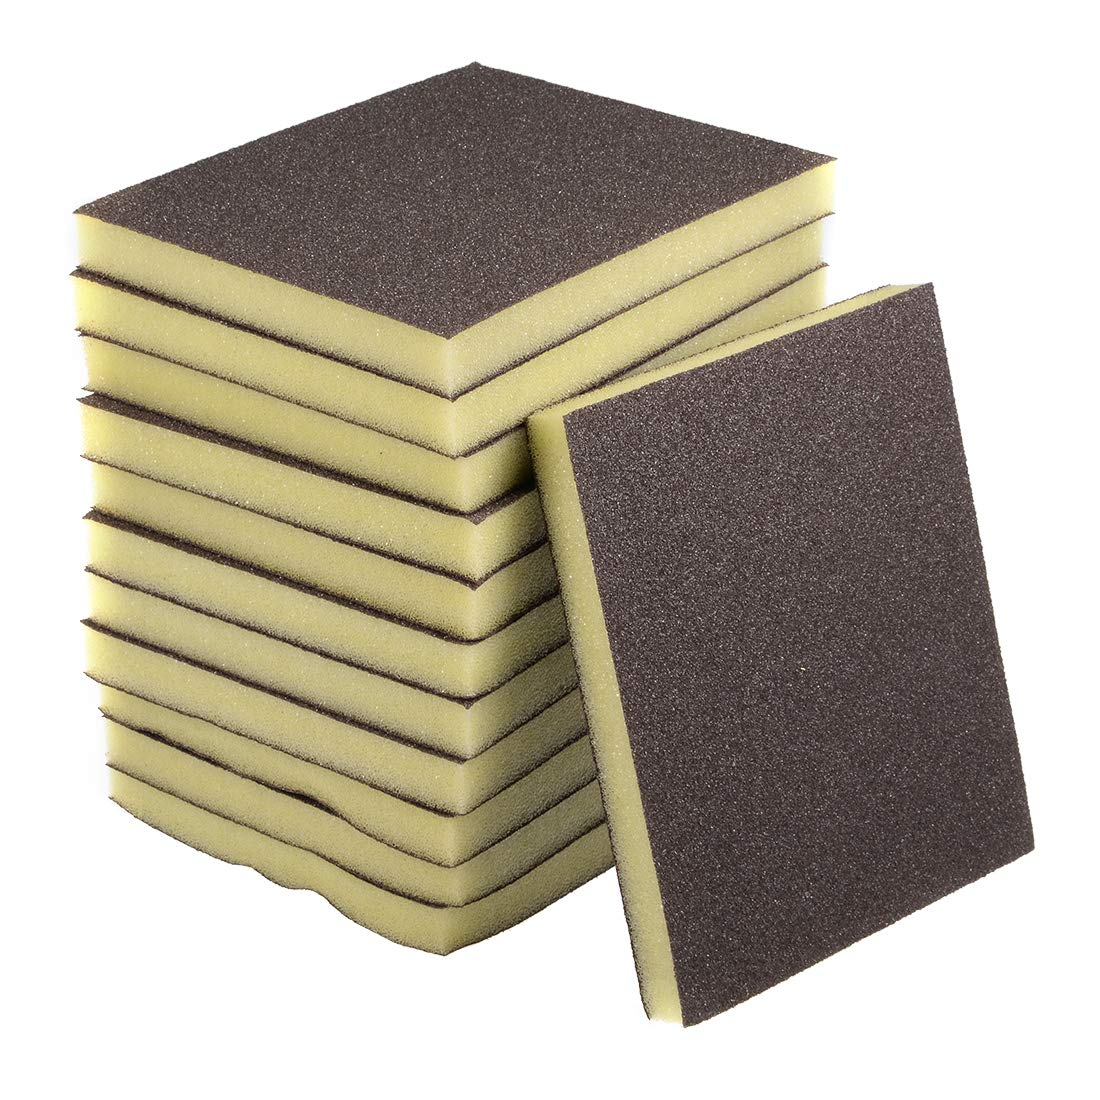 uxcell Sanding Sponge Sanding Blocks 80-Grits Coarse Grit Sand Block Pad for Kitchen Metal/Drywall/Wood 12pcs by uxcell